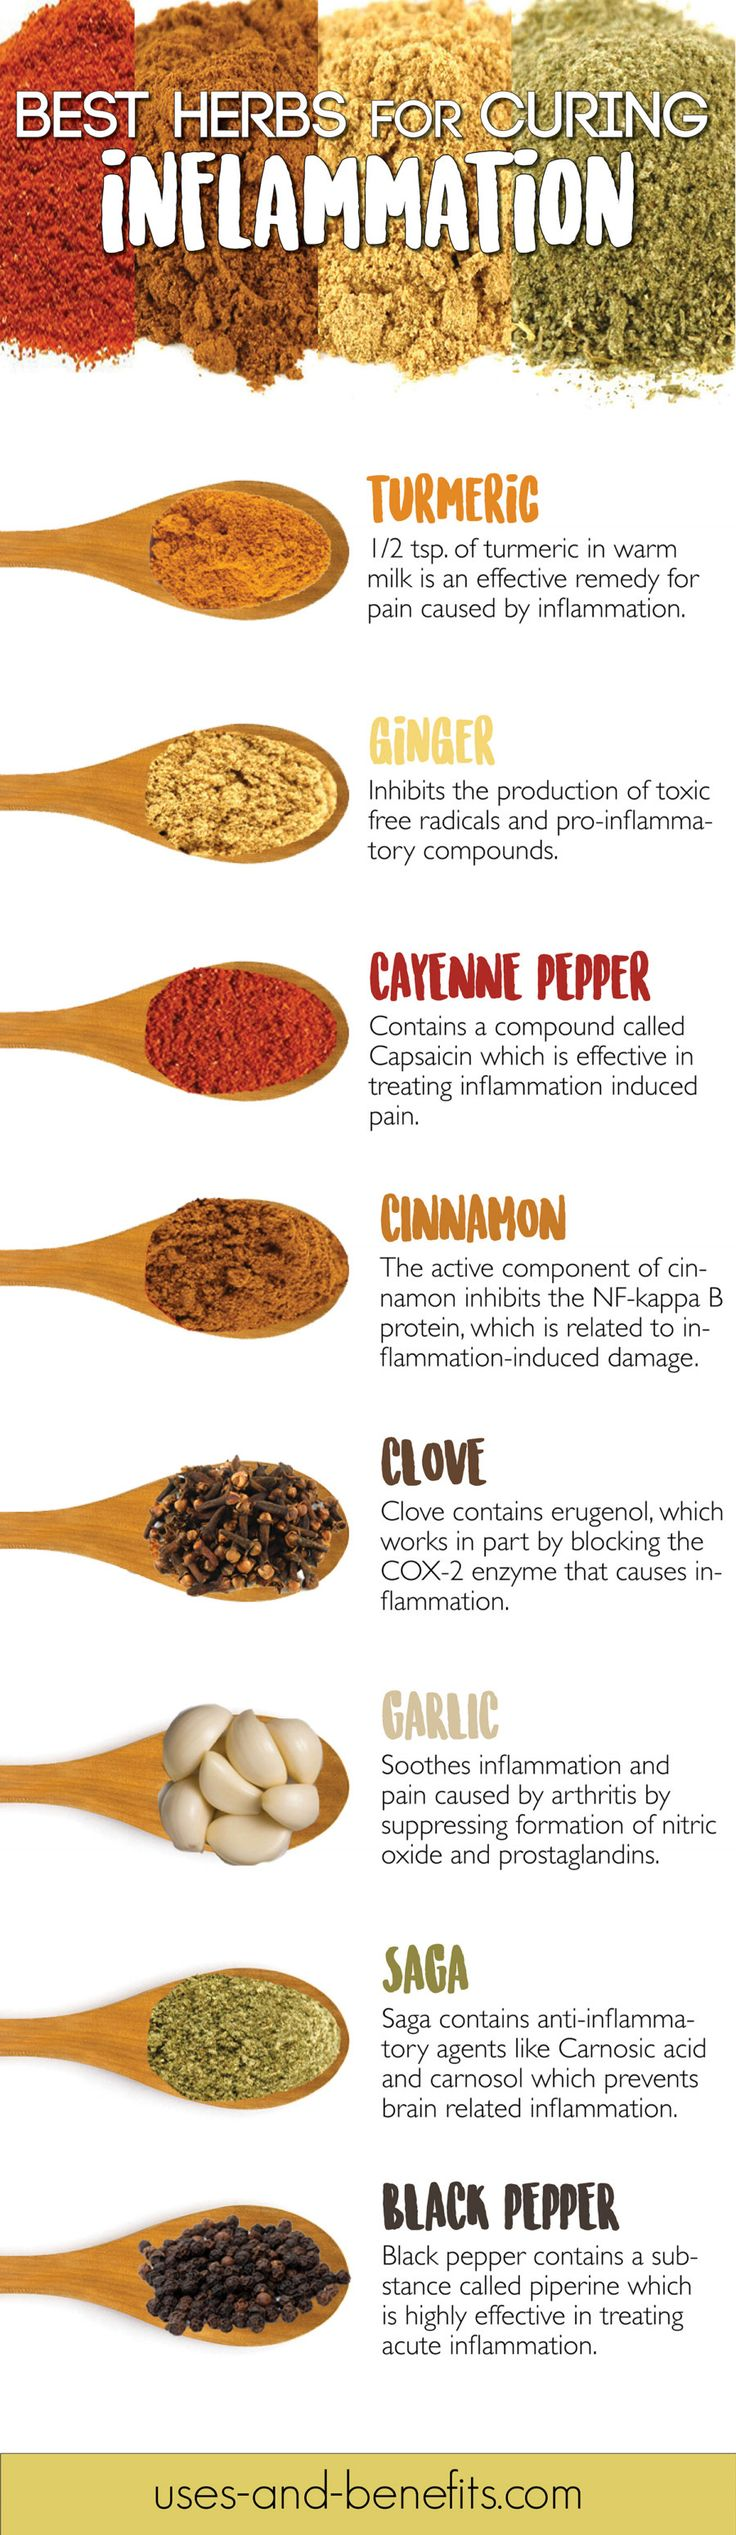 Center for holistic herbal therapy - Best Herbs For Curing Inflammation Fast Infographic